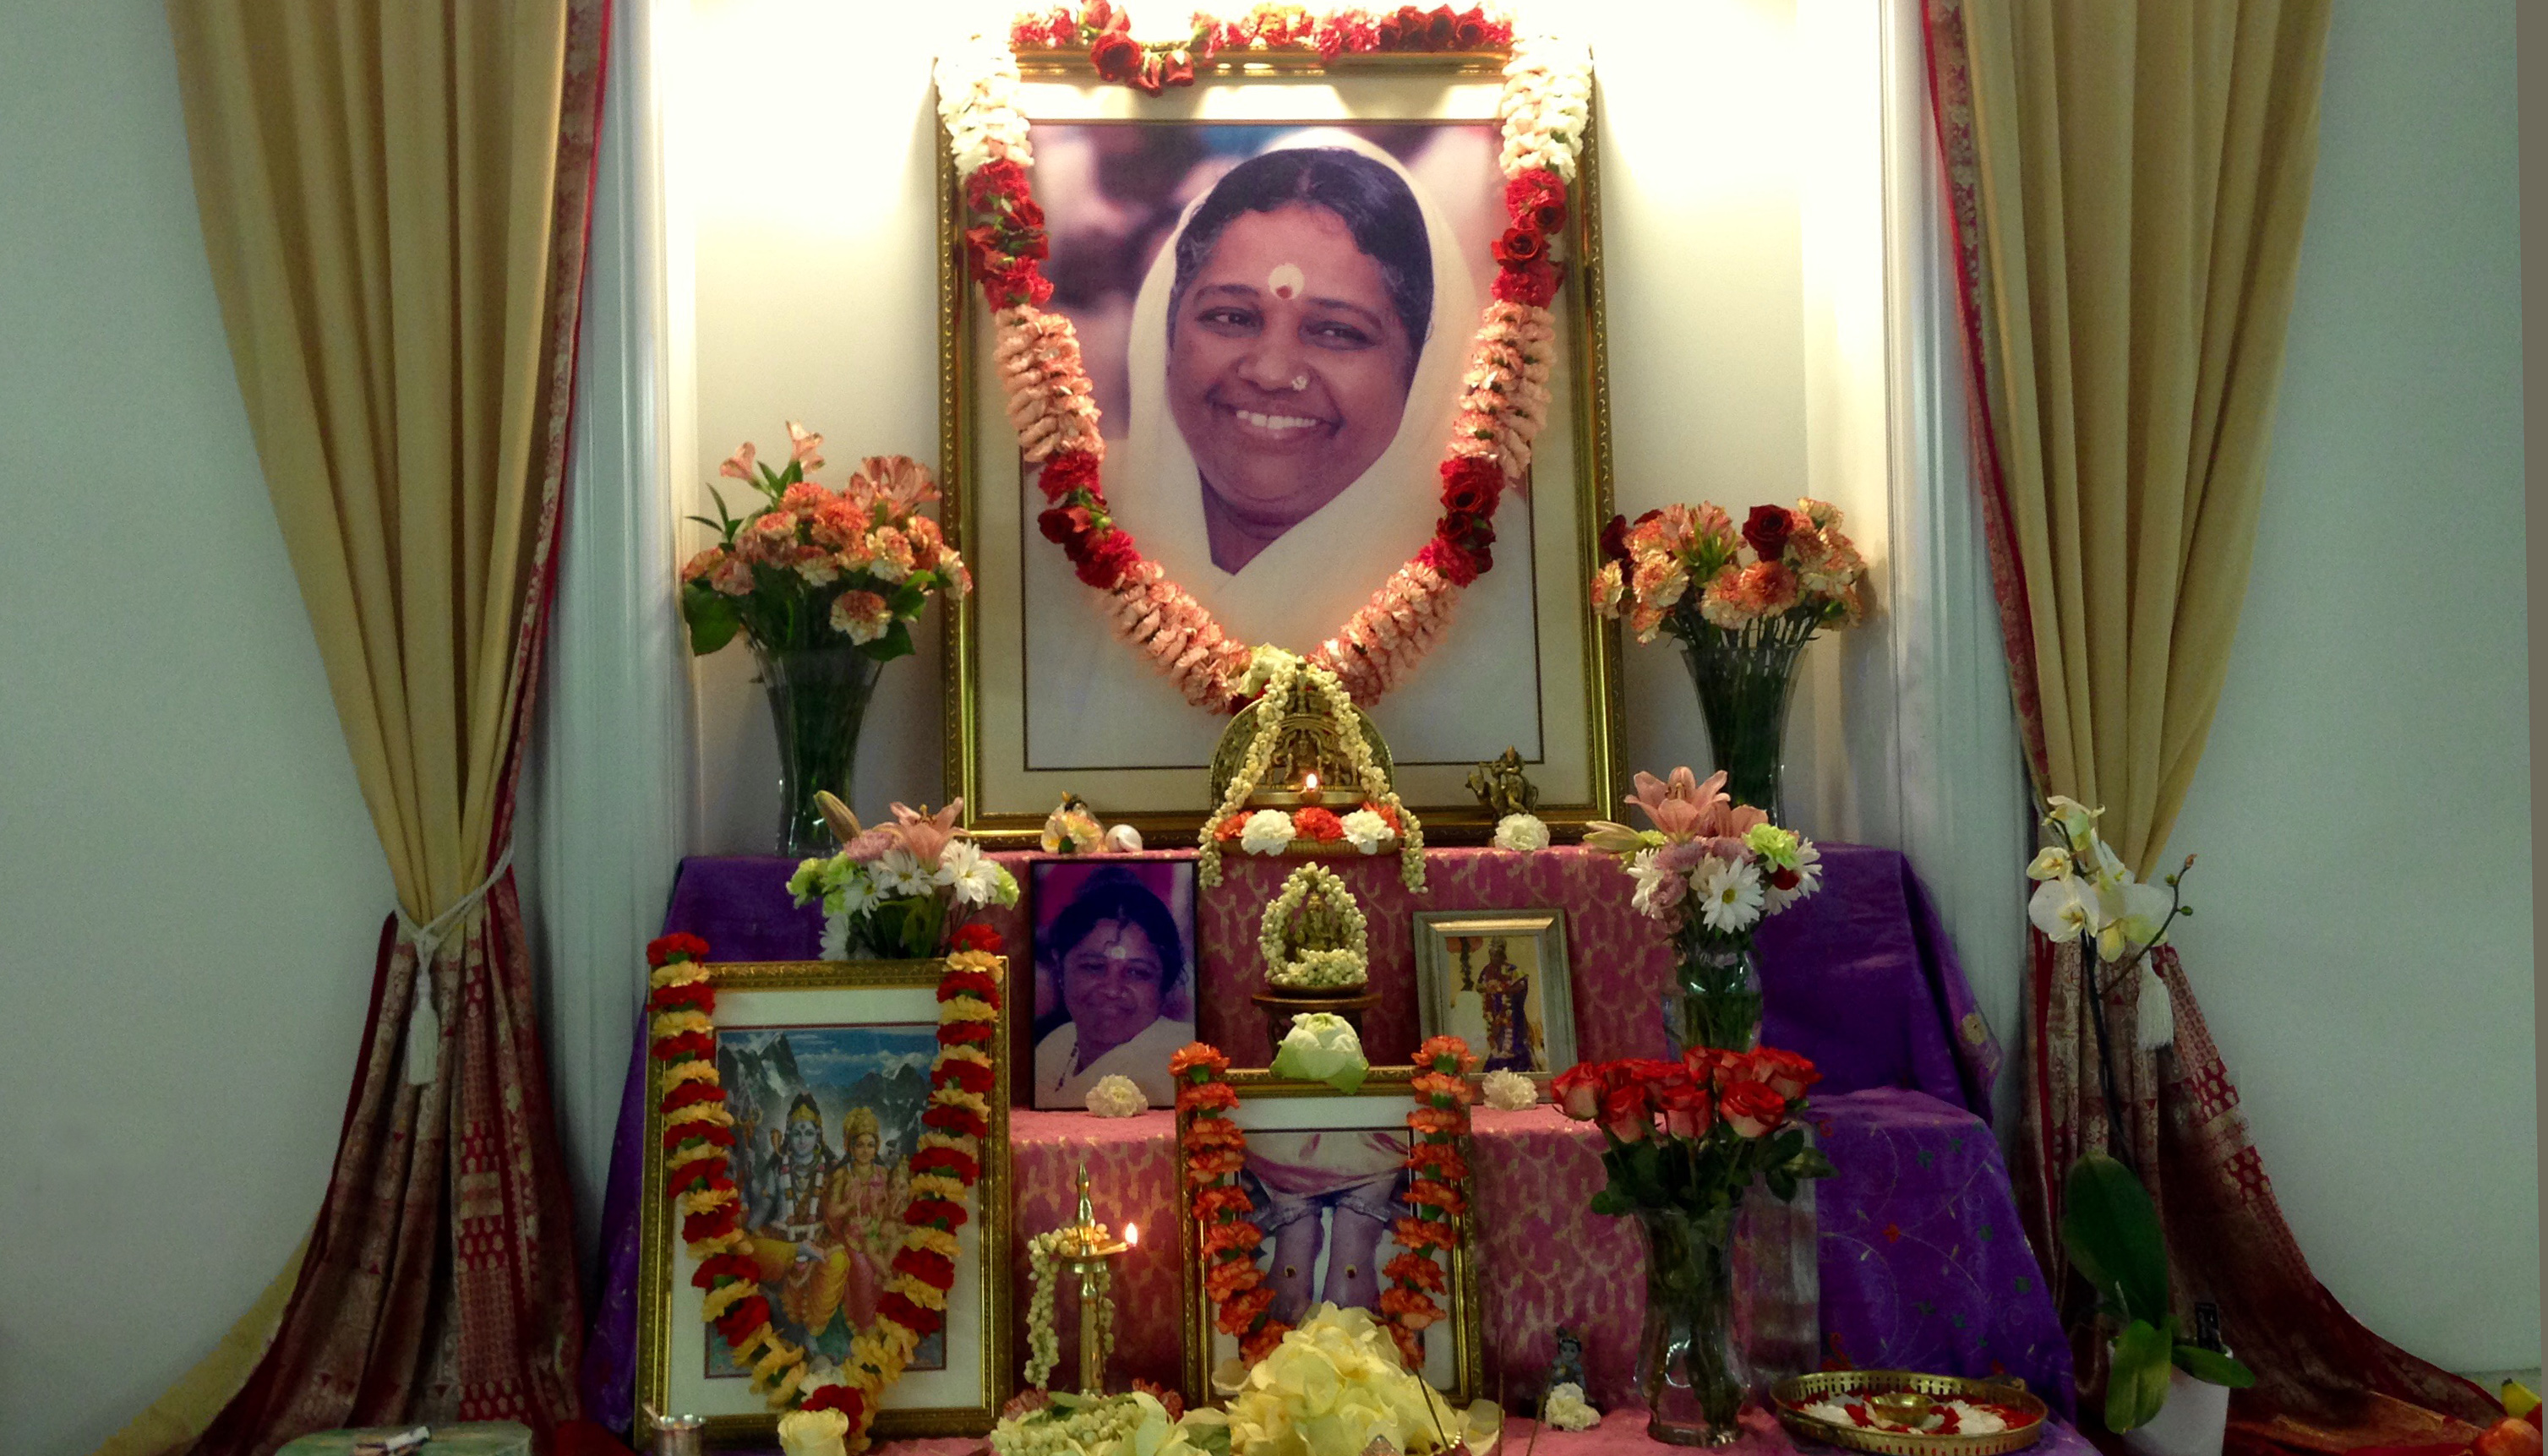 Altar with Amma's photo, garlands and fresh flowers